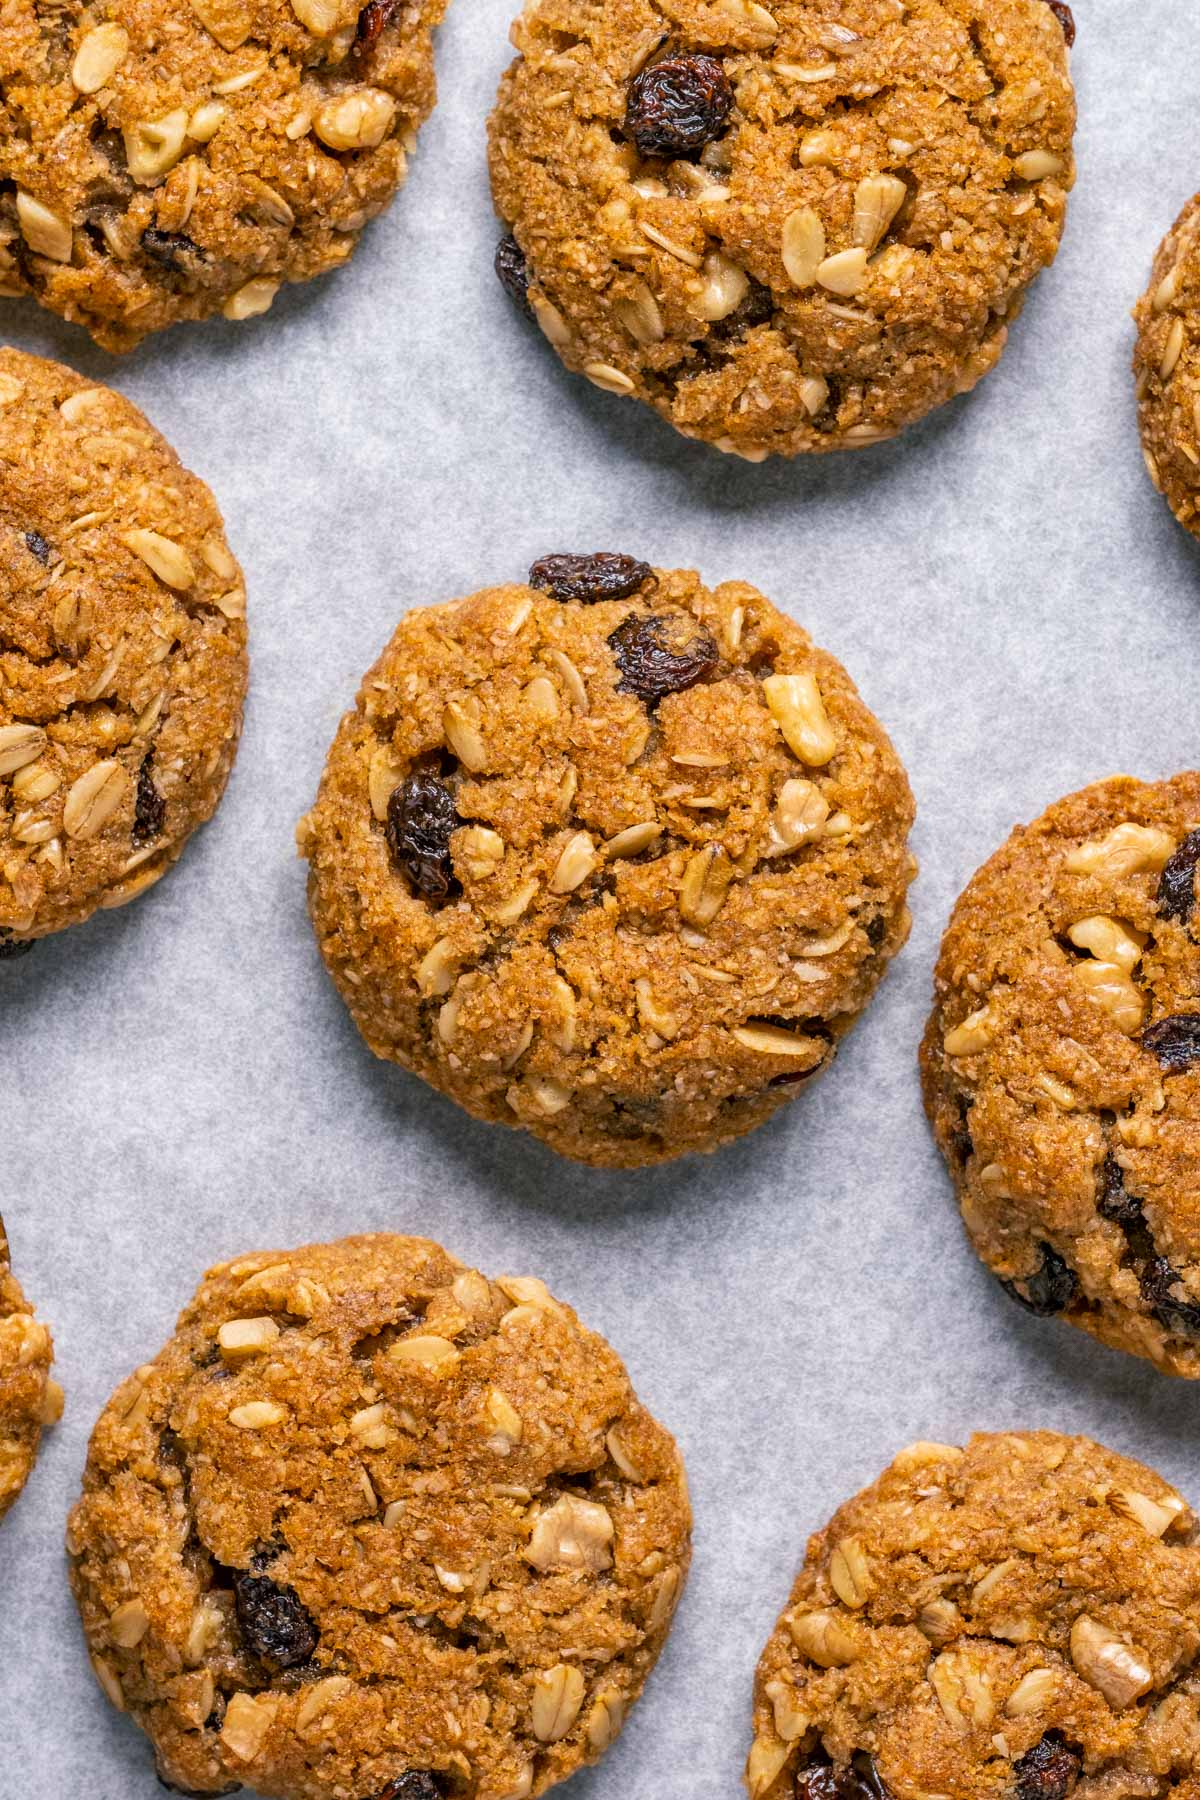 Vegan oatmeal raisin cookies on a parchment lined baking tray.